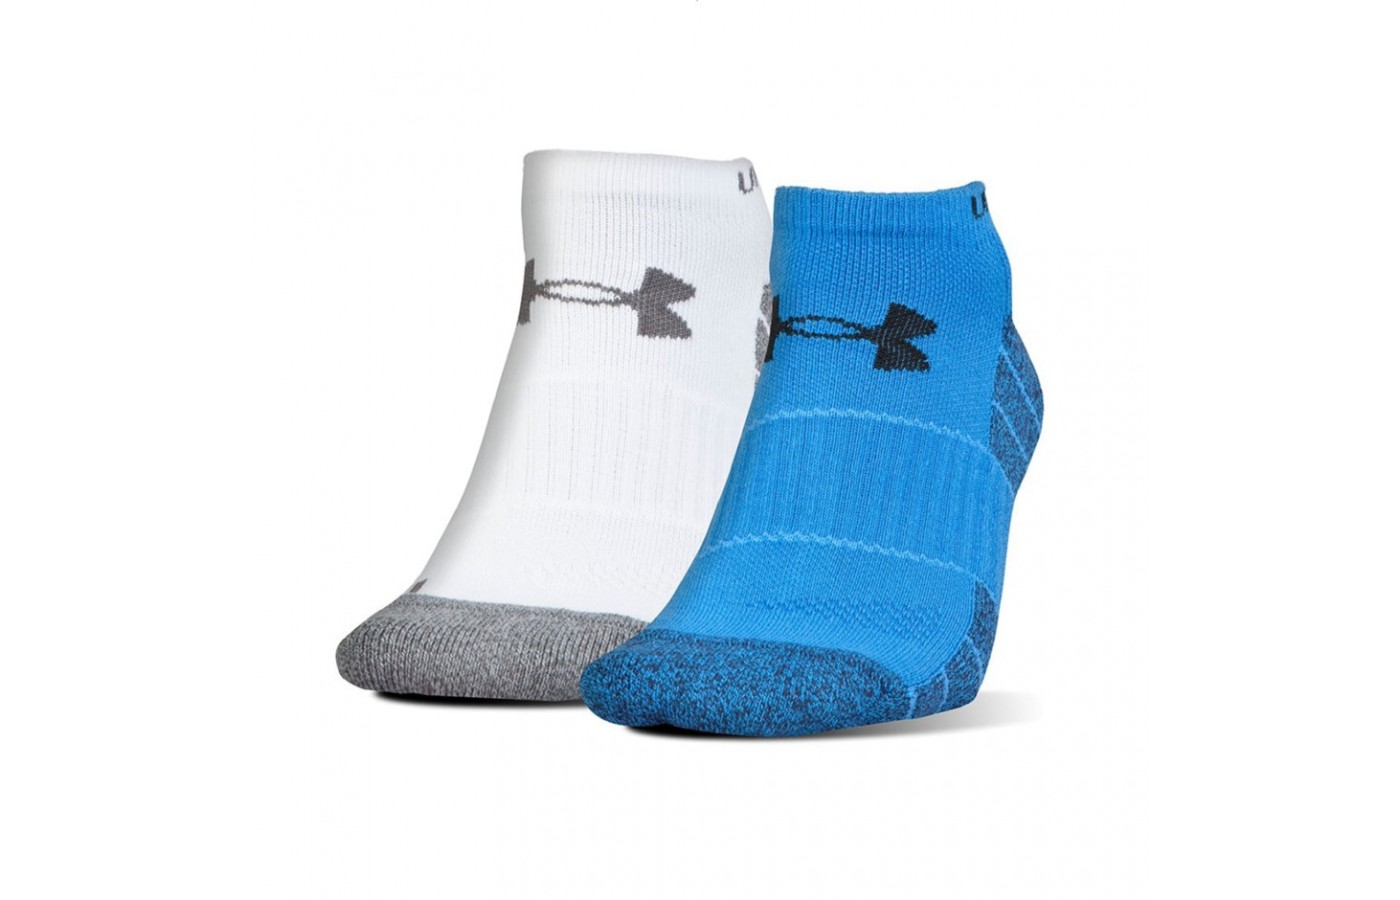 Under Armour Elevated Socks